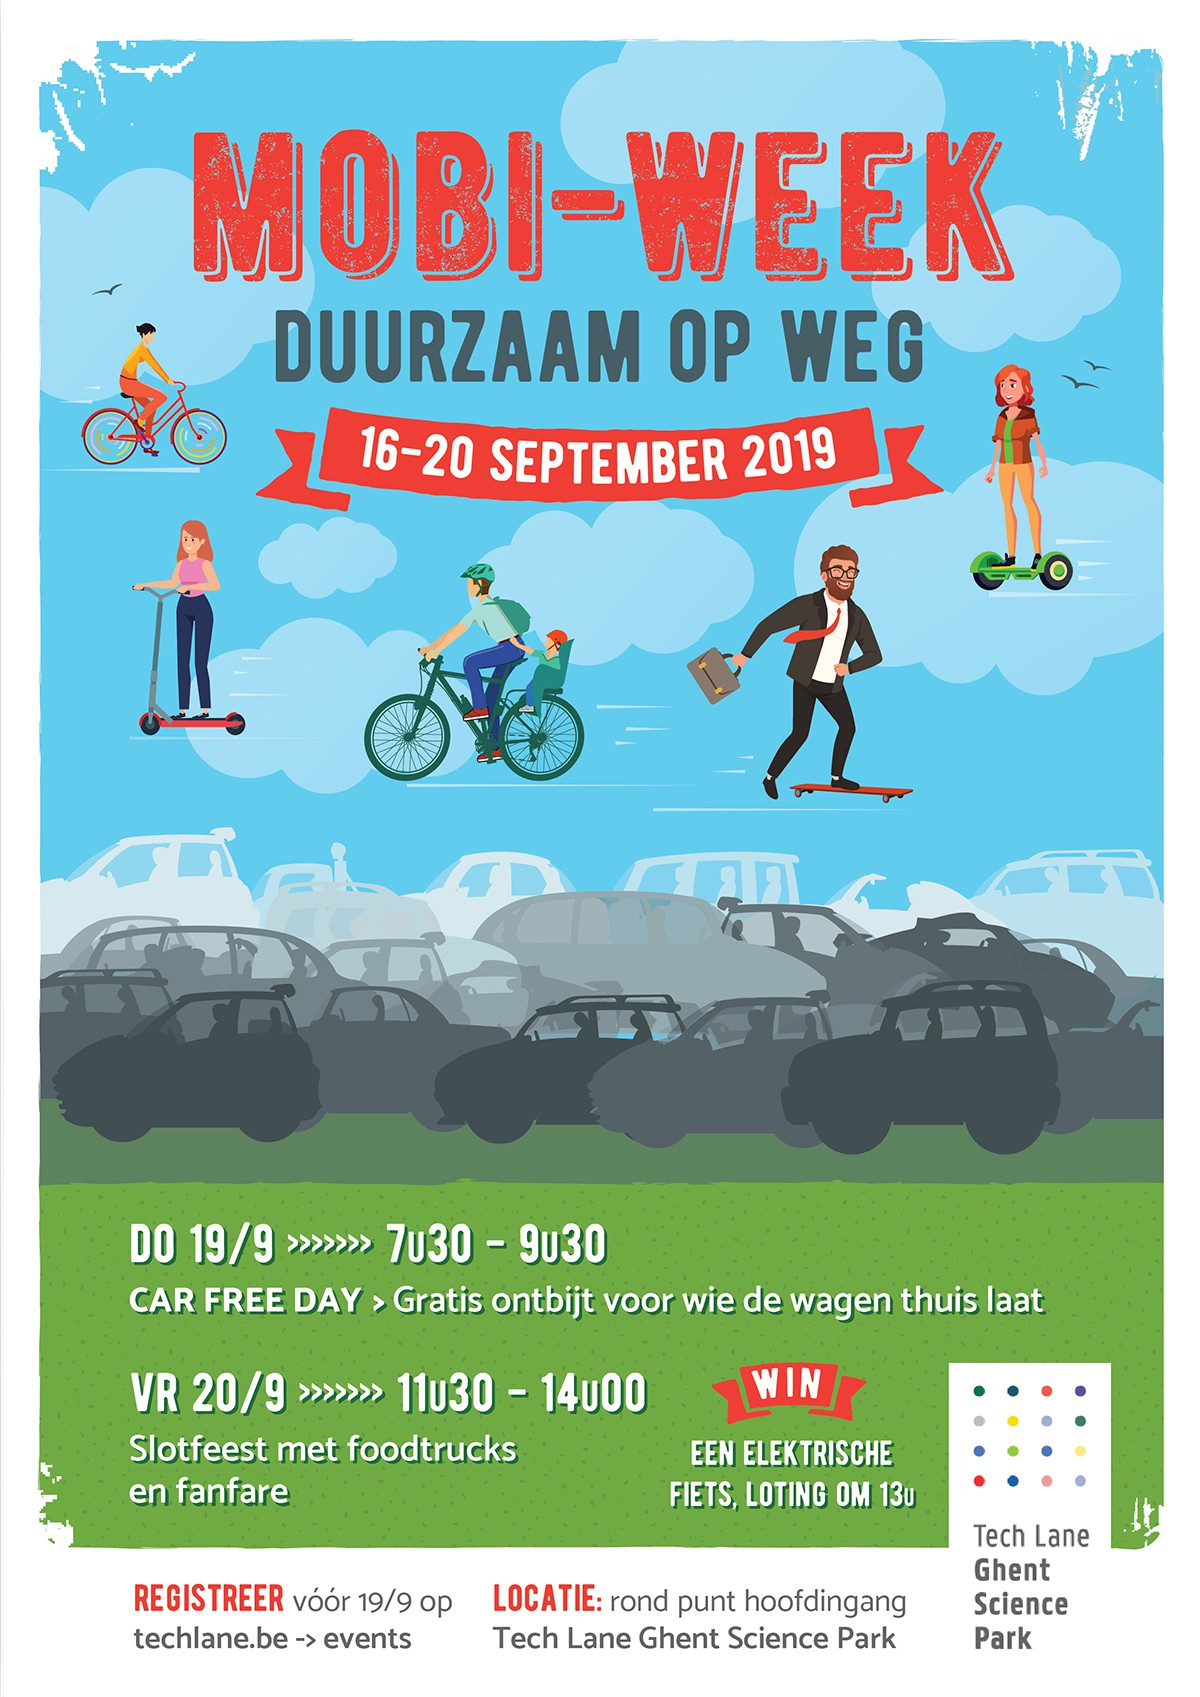 Mobility week: bring your bike, leave the car